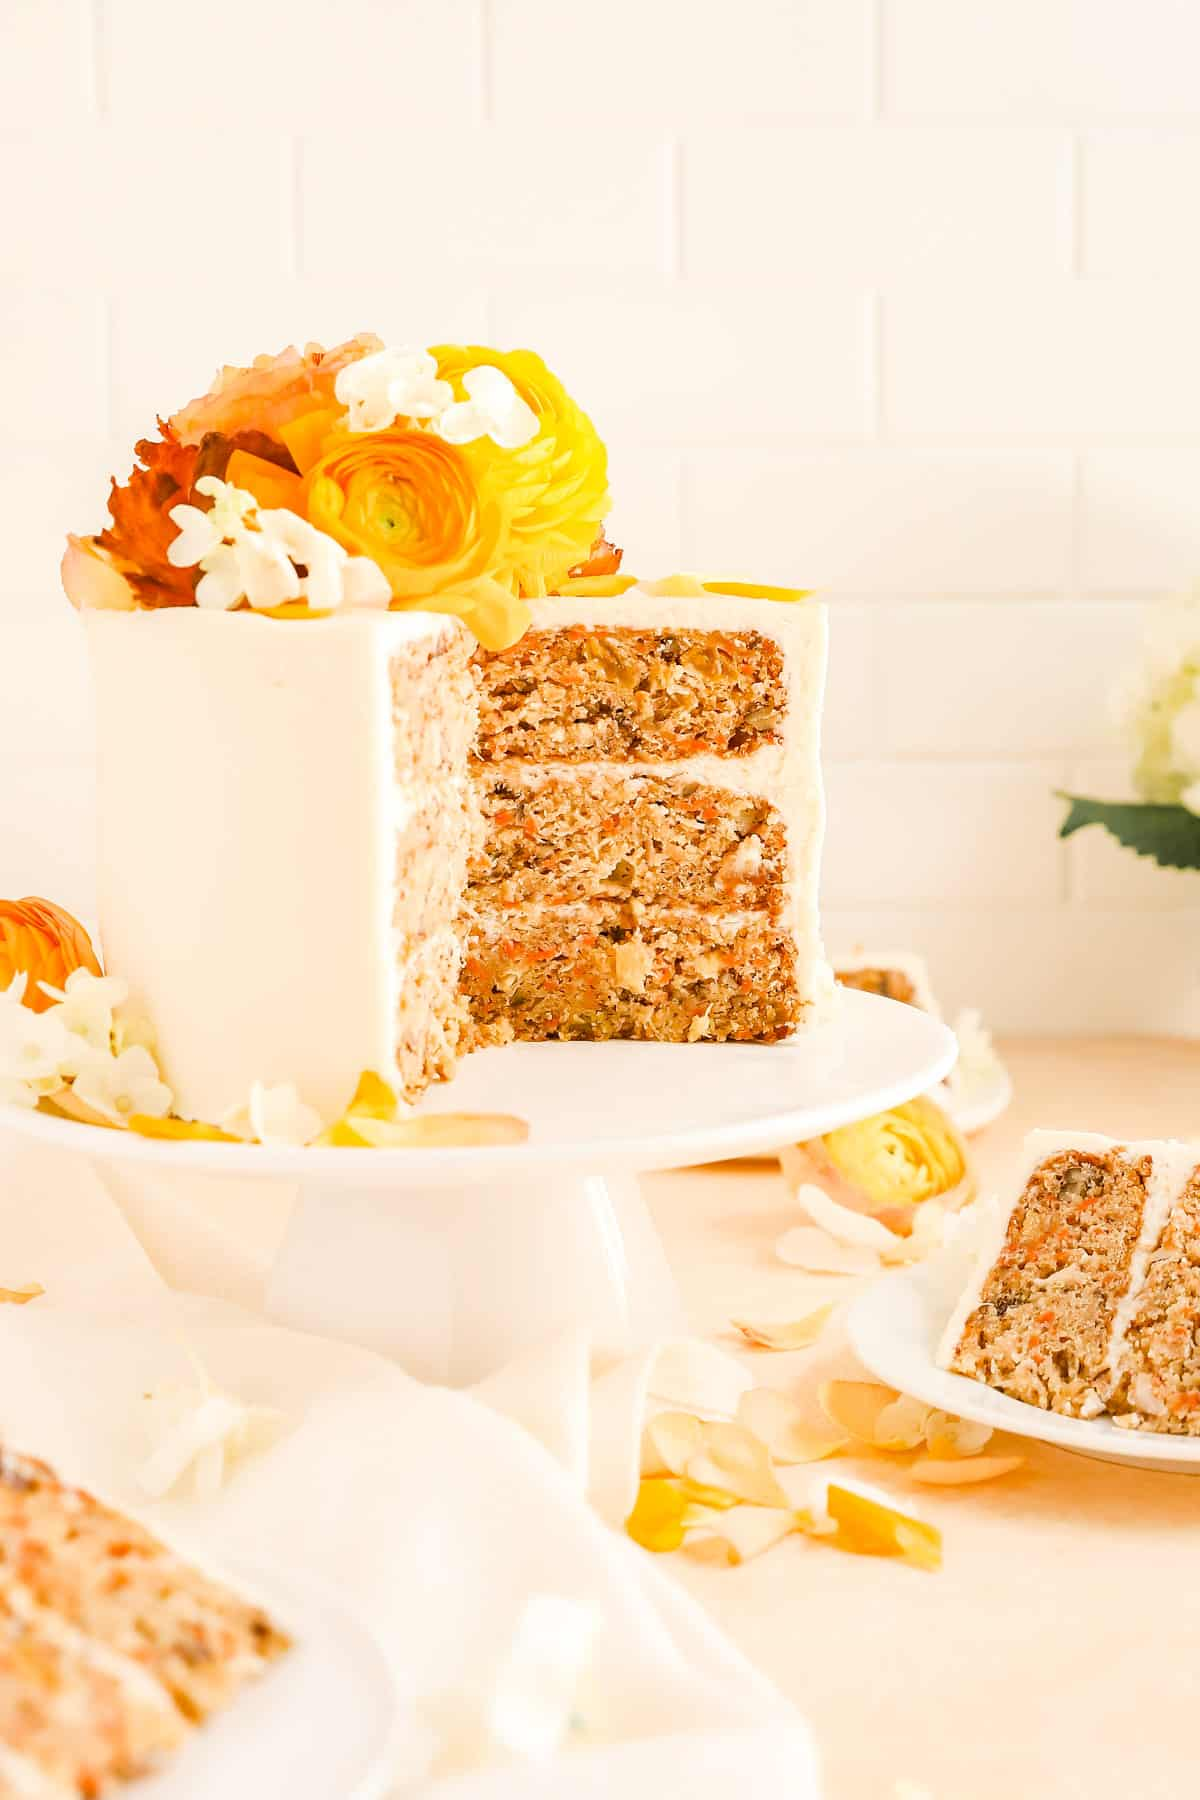 a carrot cake on a cake plate with a few slices cut our and on plates.